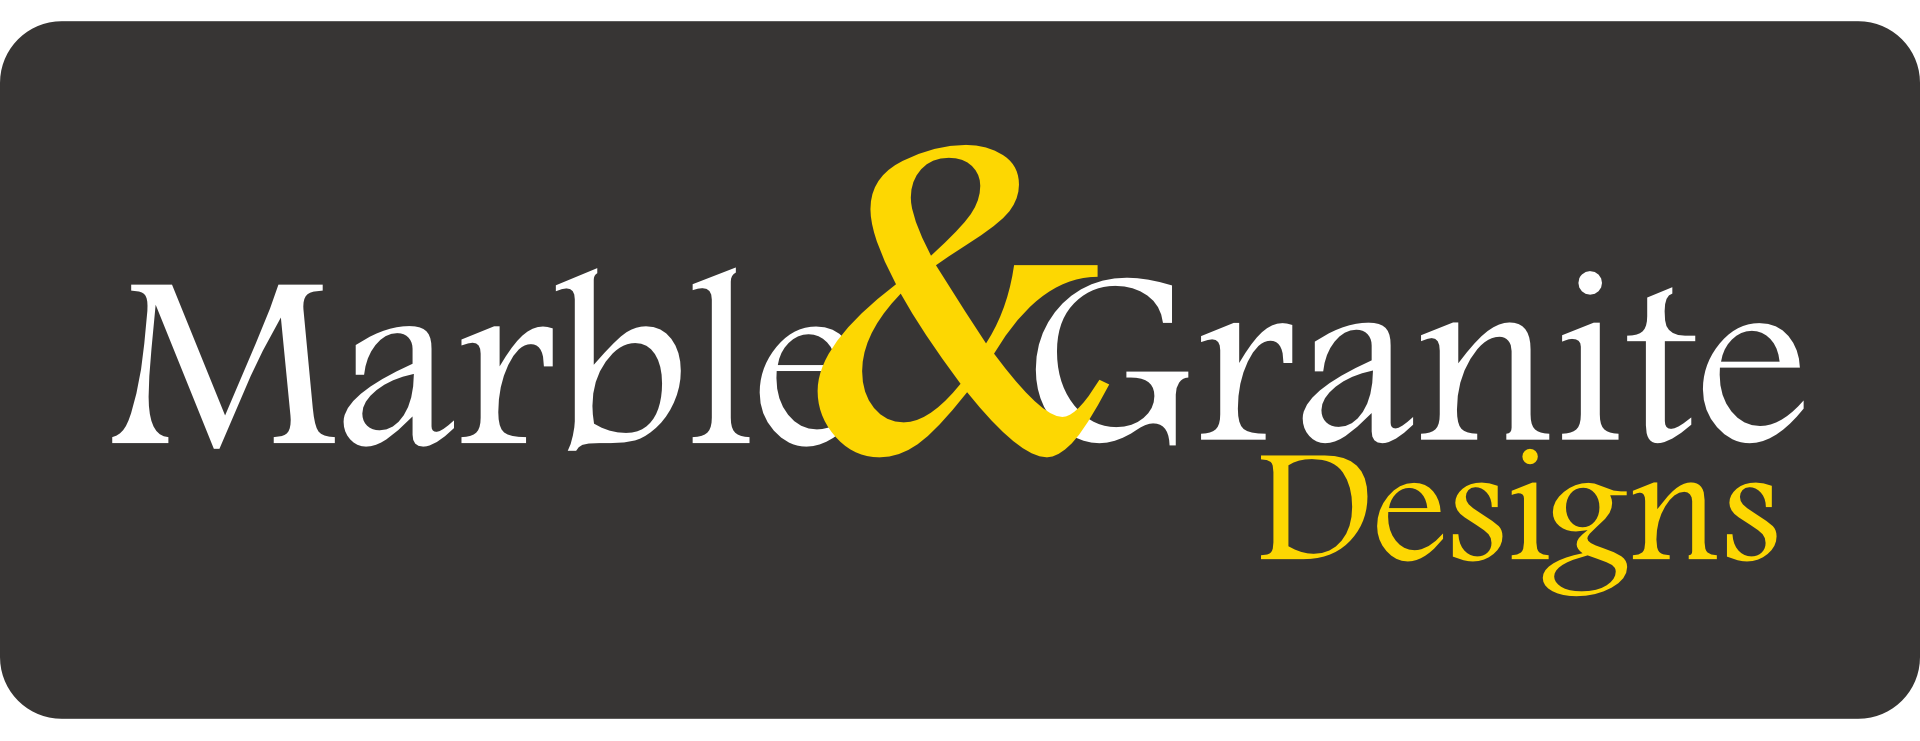 Marble & Granite Designs Ltd